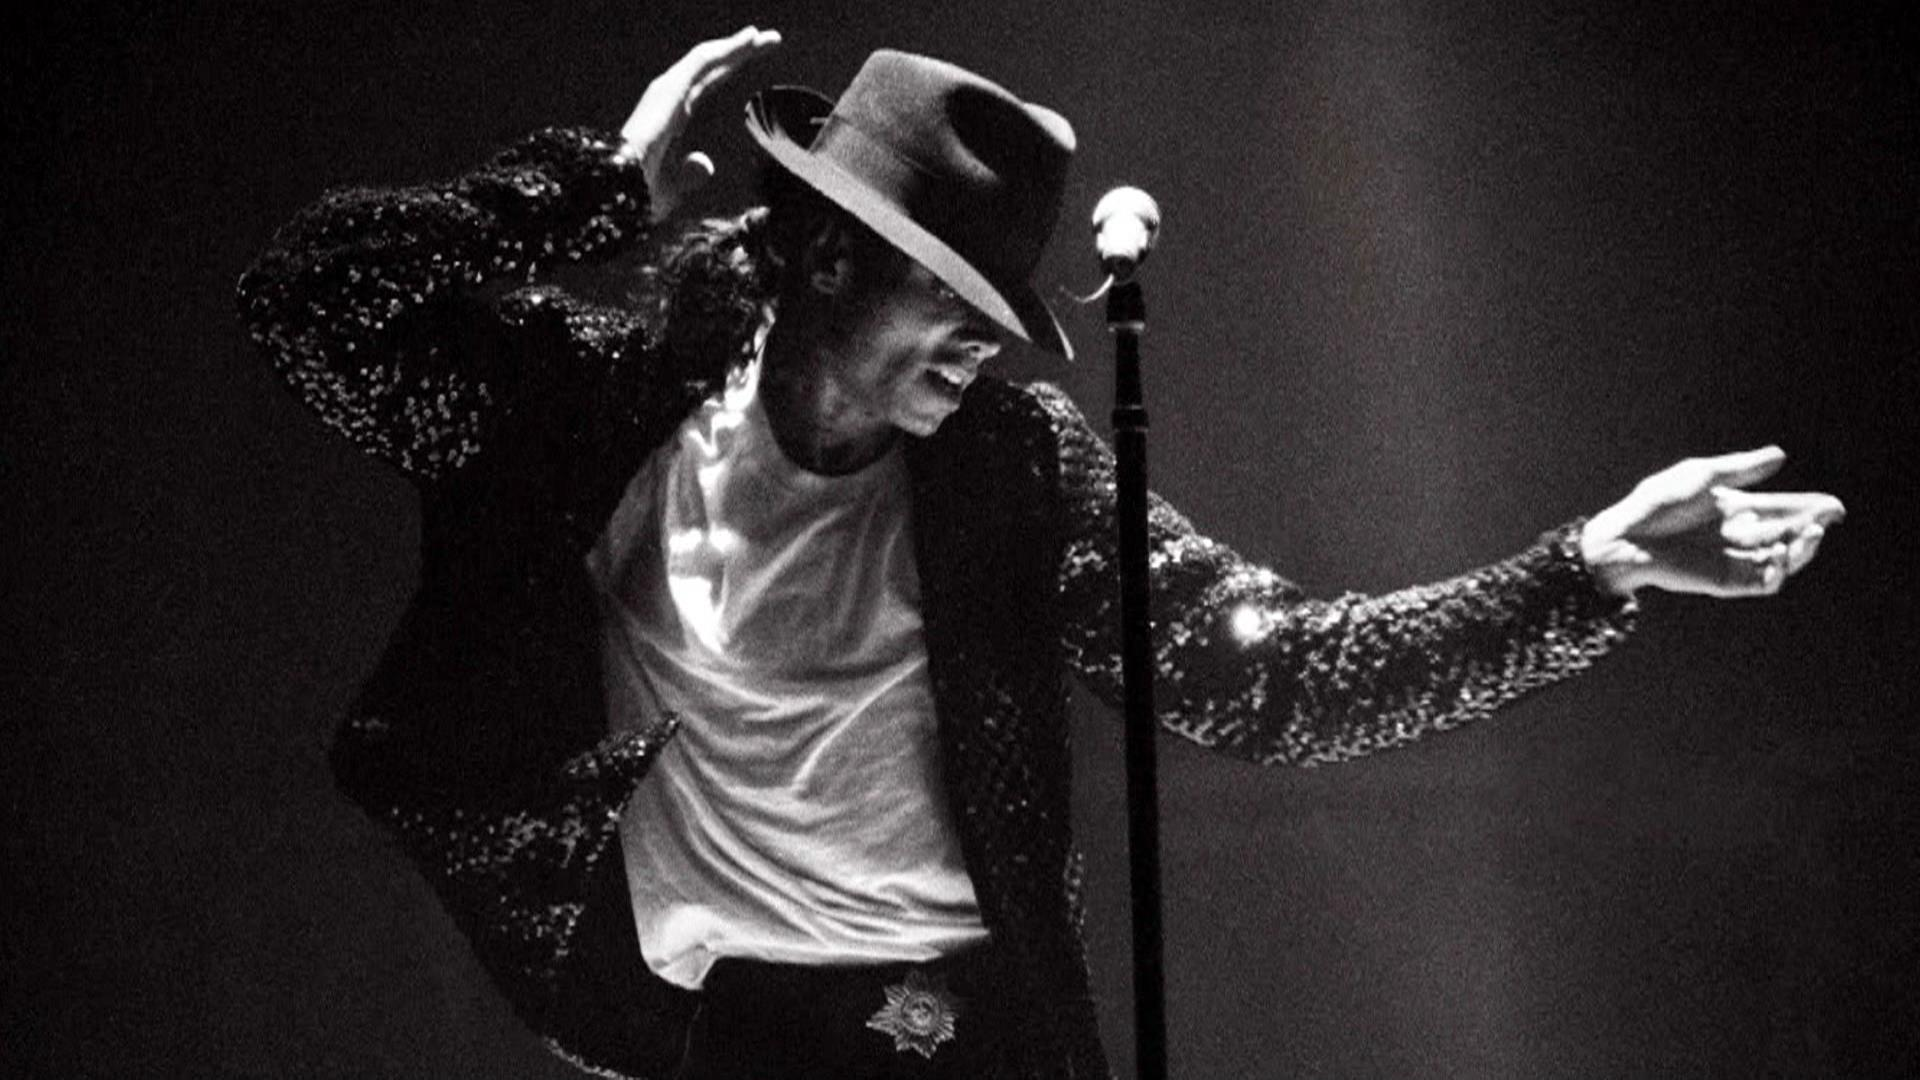 Michael Jackson fans share new perspective 10 years after his death